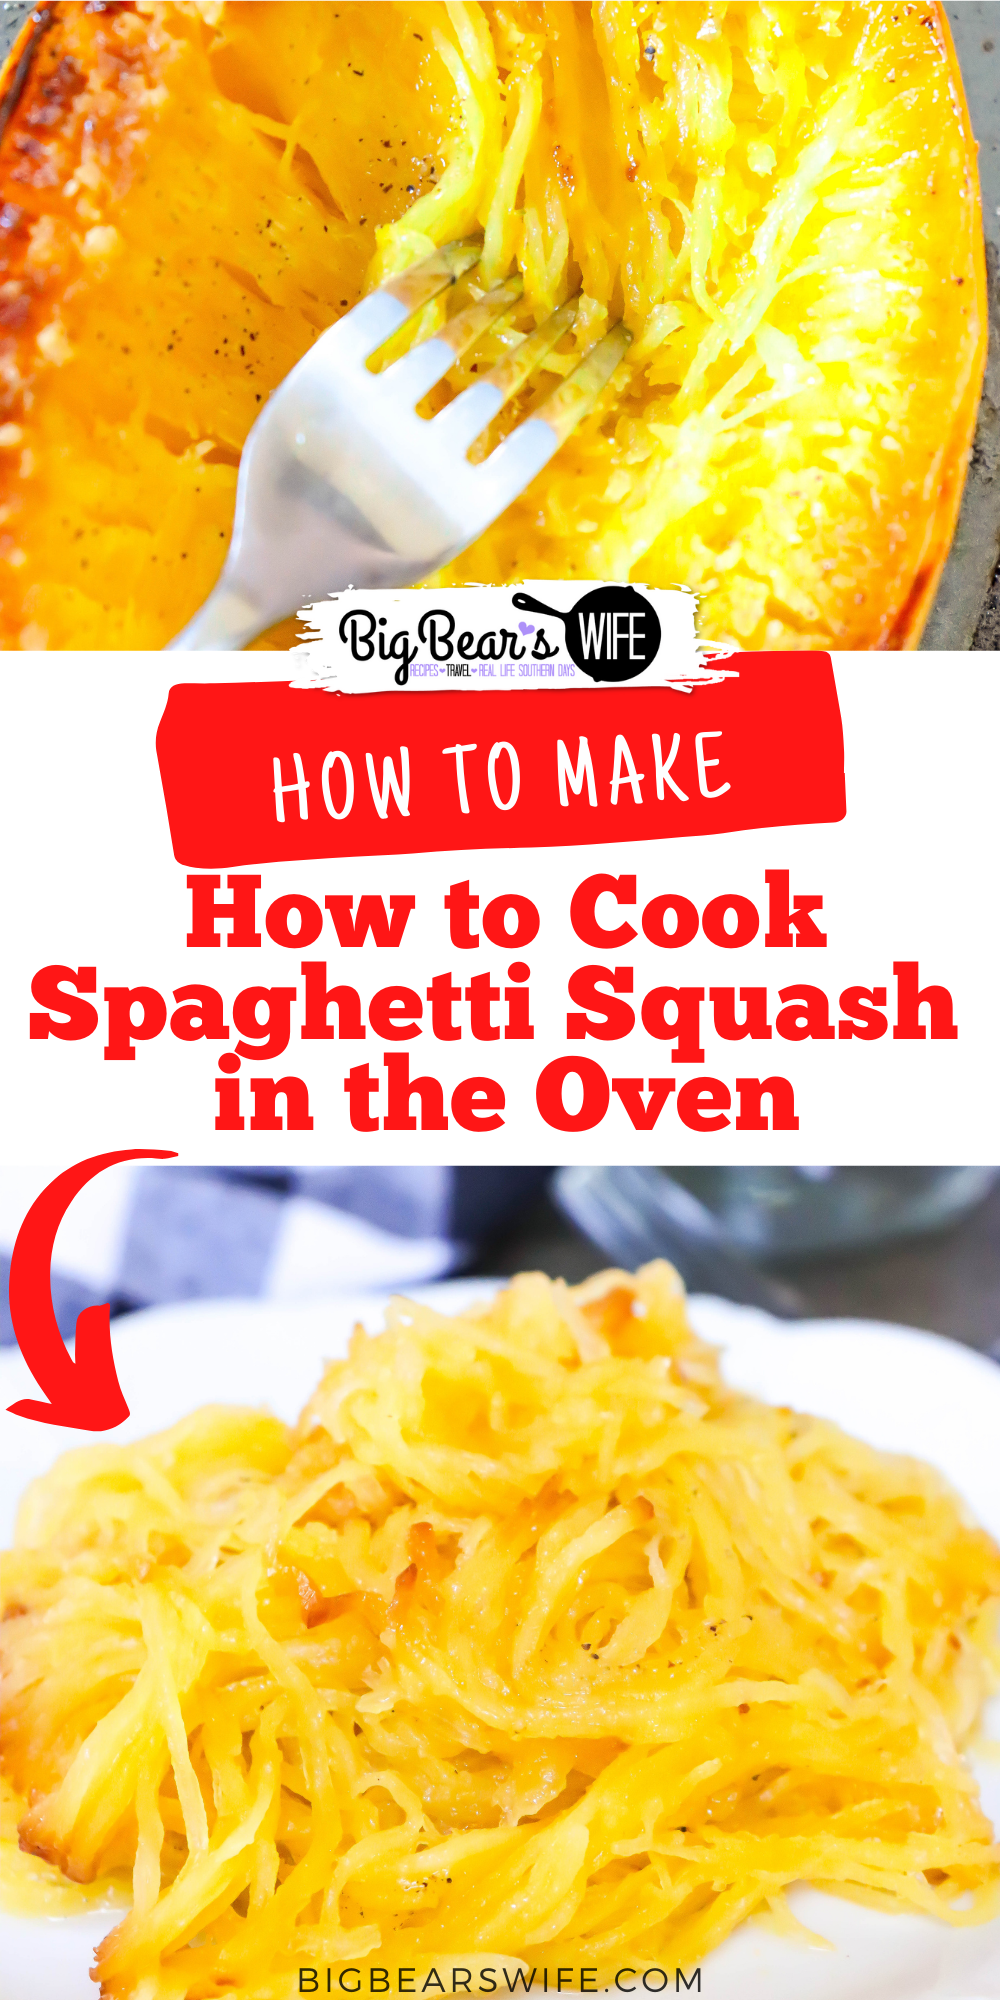 Trying to learn How to Cook Spaghetti Squash in the Oven? I'll show you how I love to cook prep and cook Spaghetti Squash! via @bigbearswife